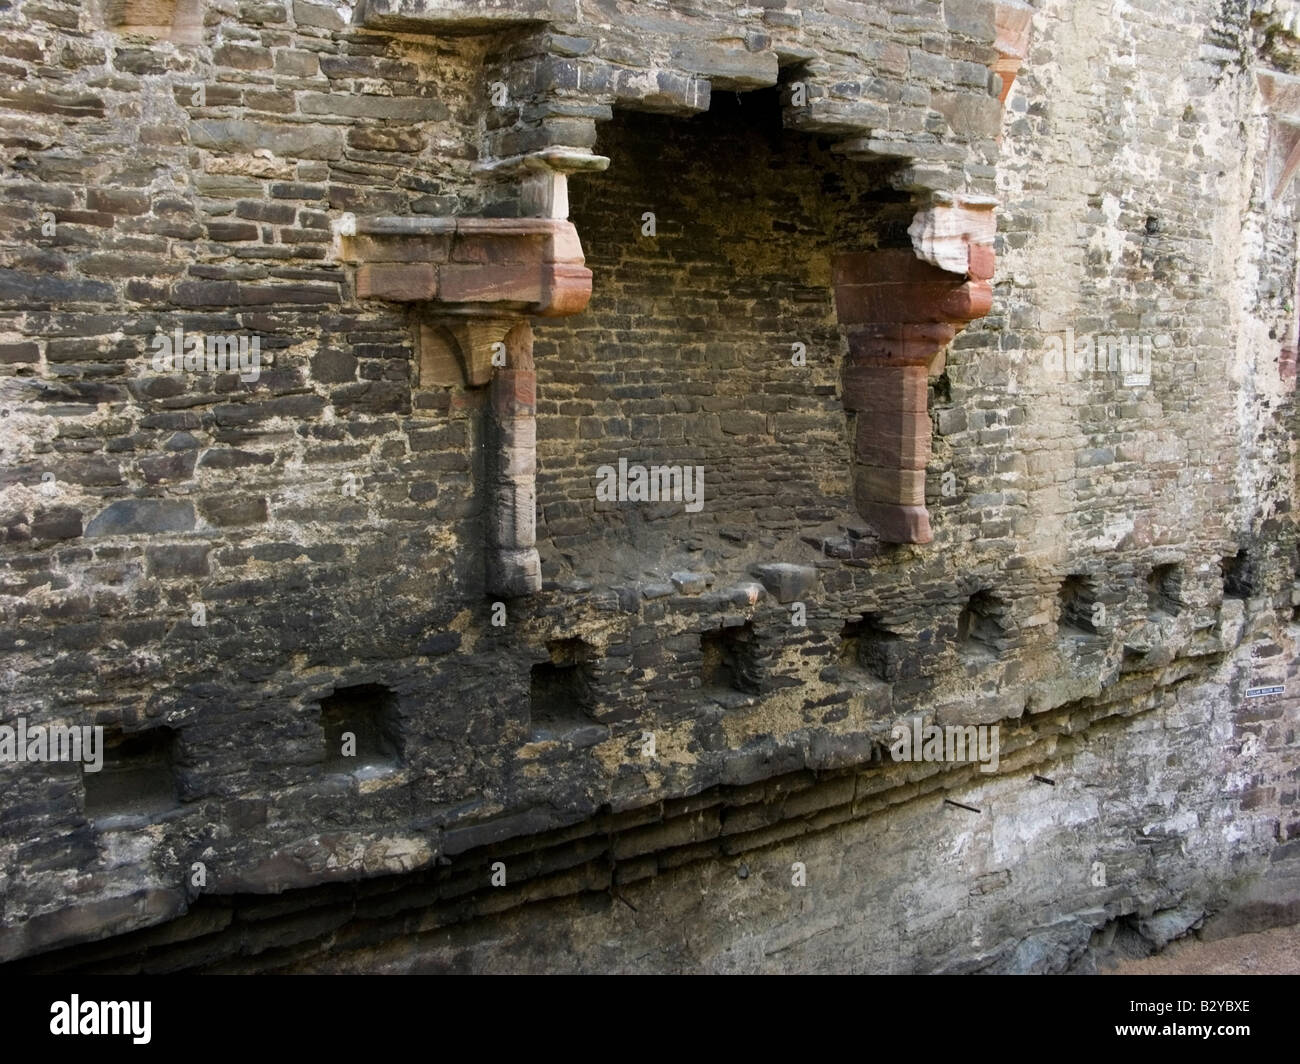 Fireplace and holes for the floor timbers in the Great Hall, Conwy Castle, Conwy, North Wales, UK - Stock Image